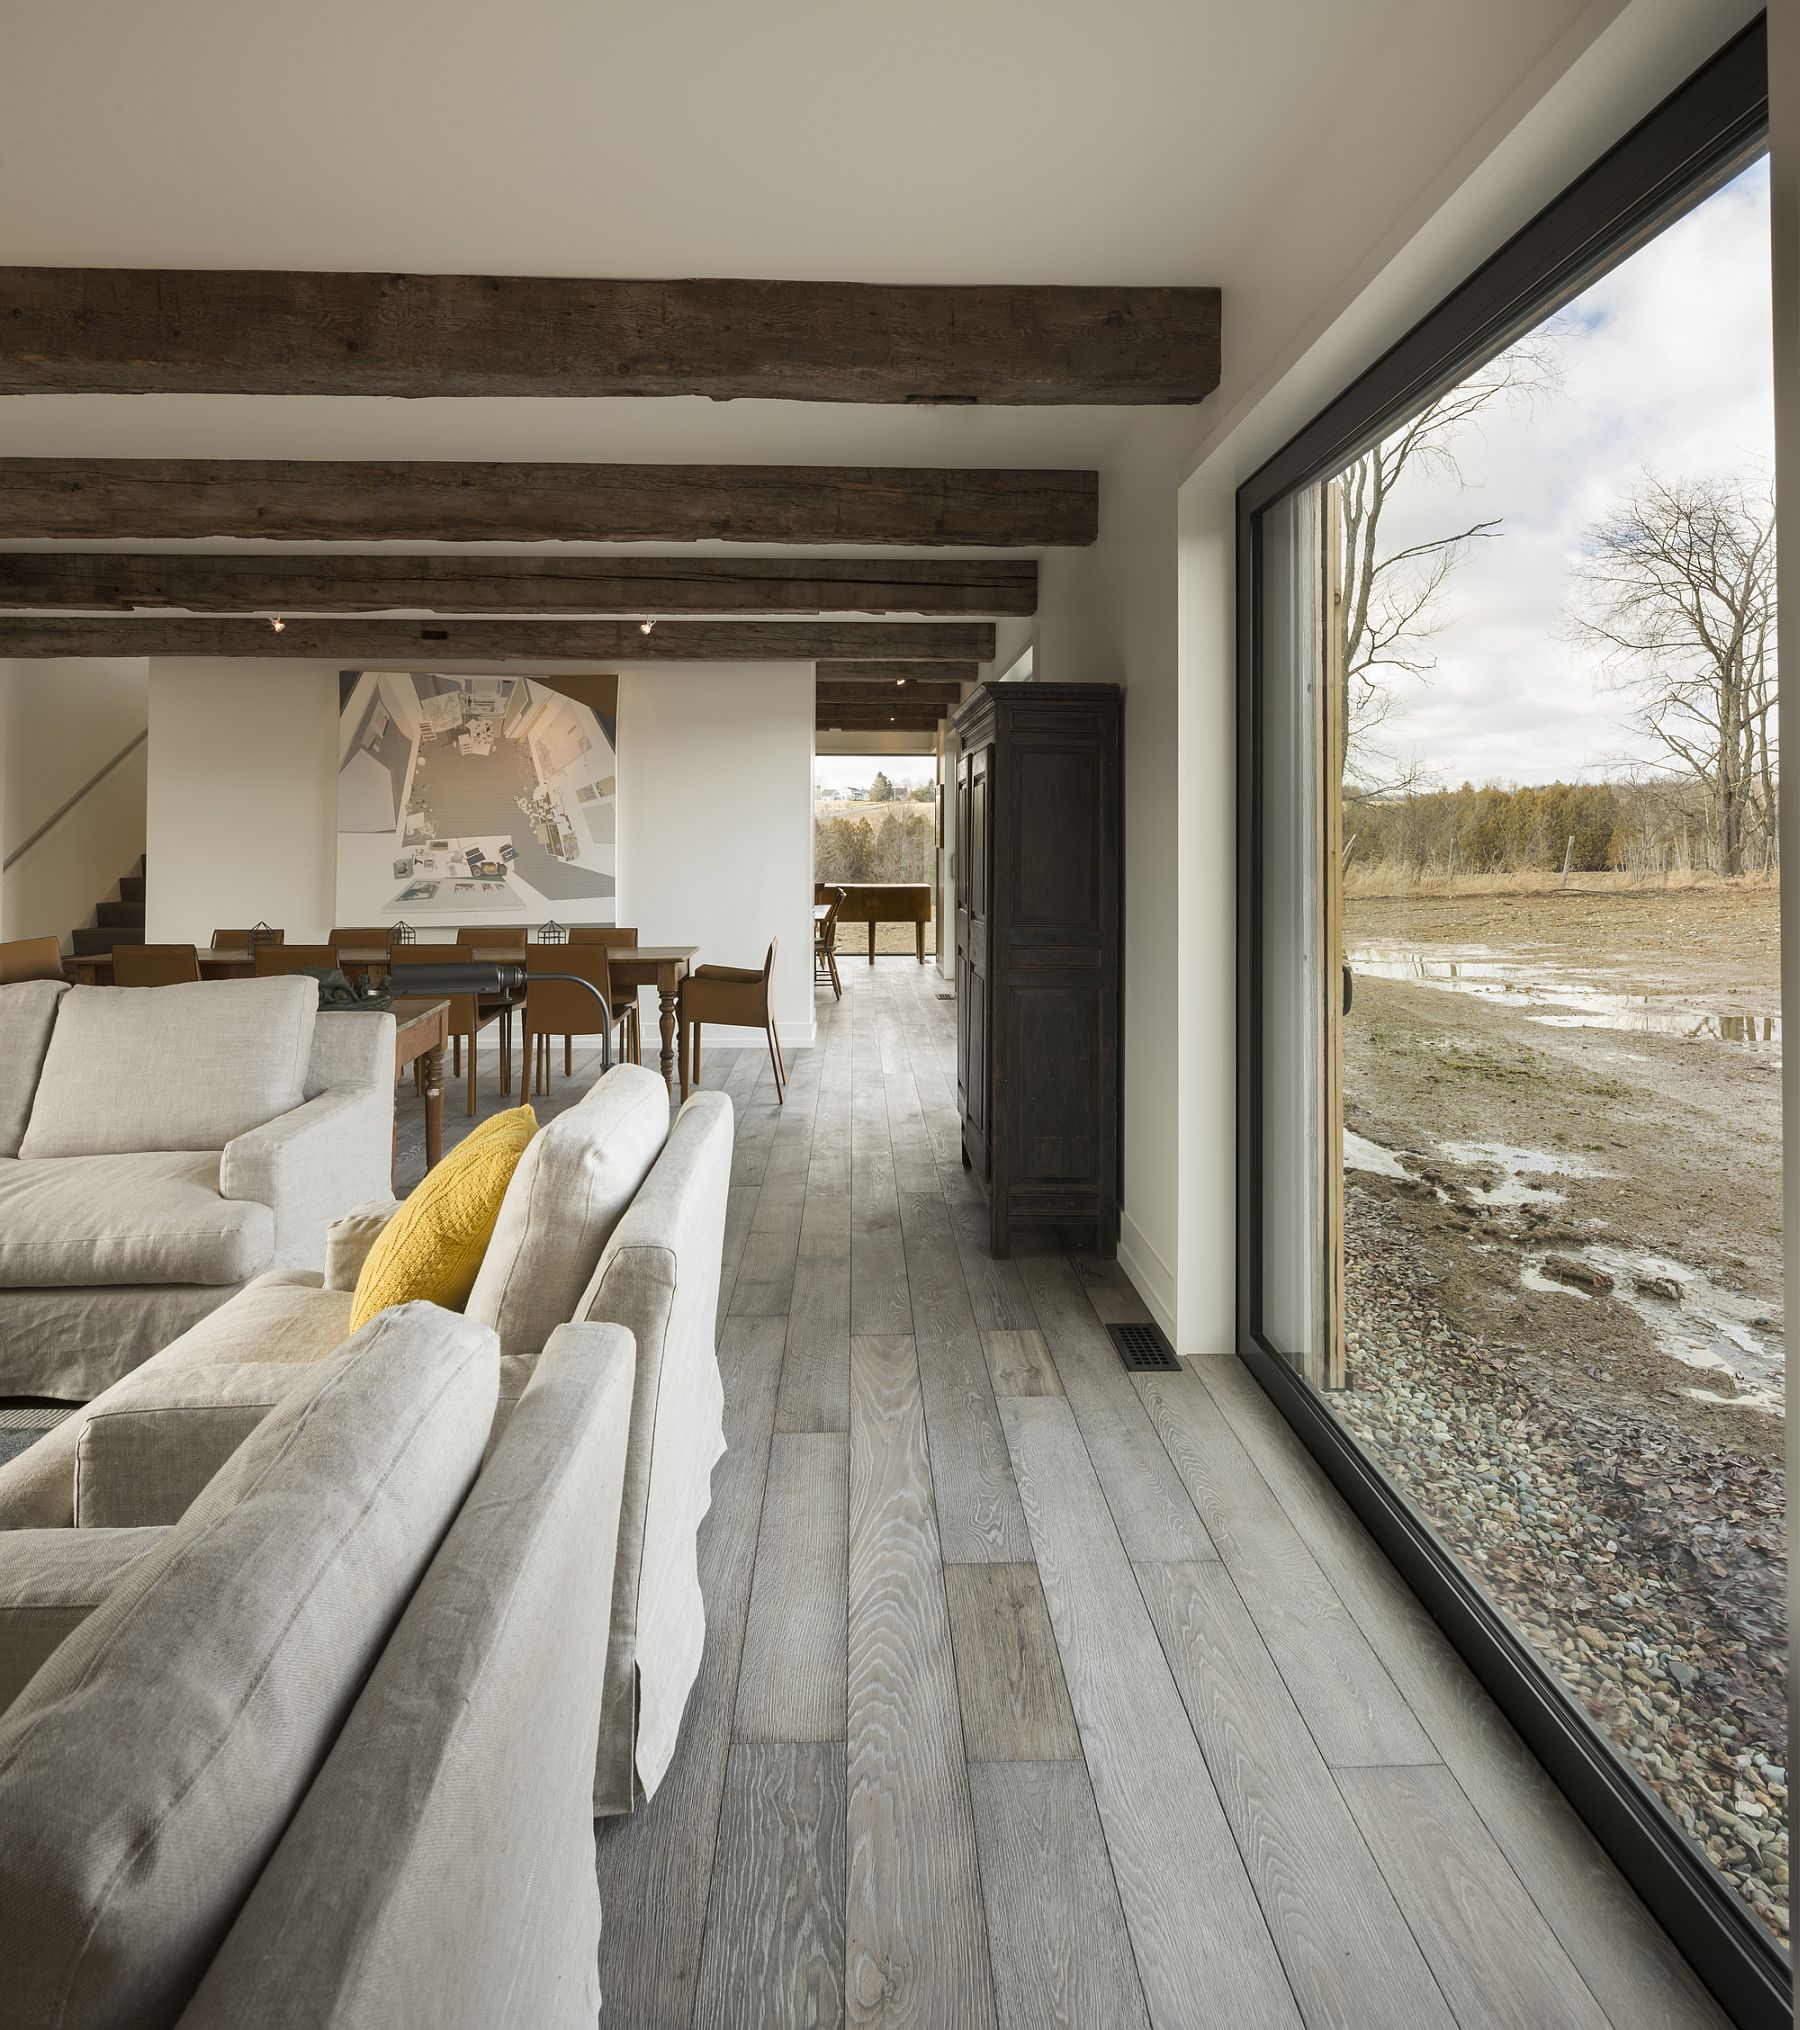 Rustic finishes are coupled with modern decor inside the North Hatley farmhouse